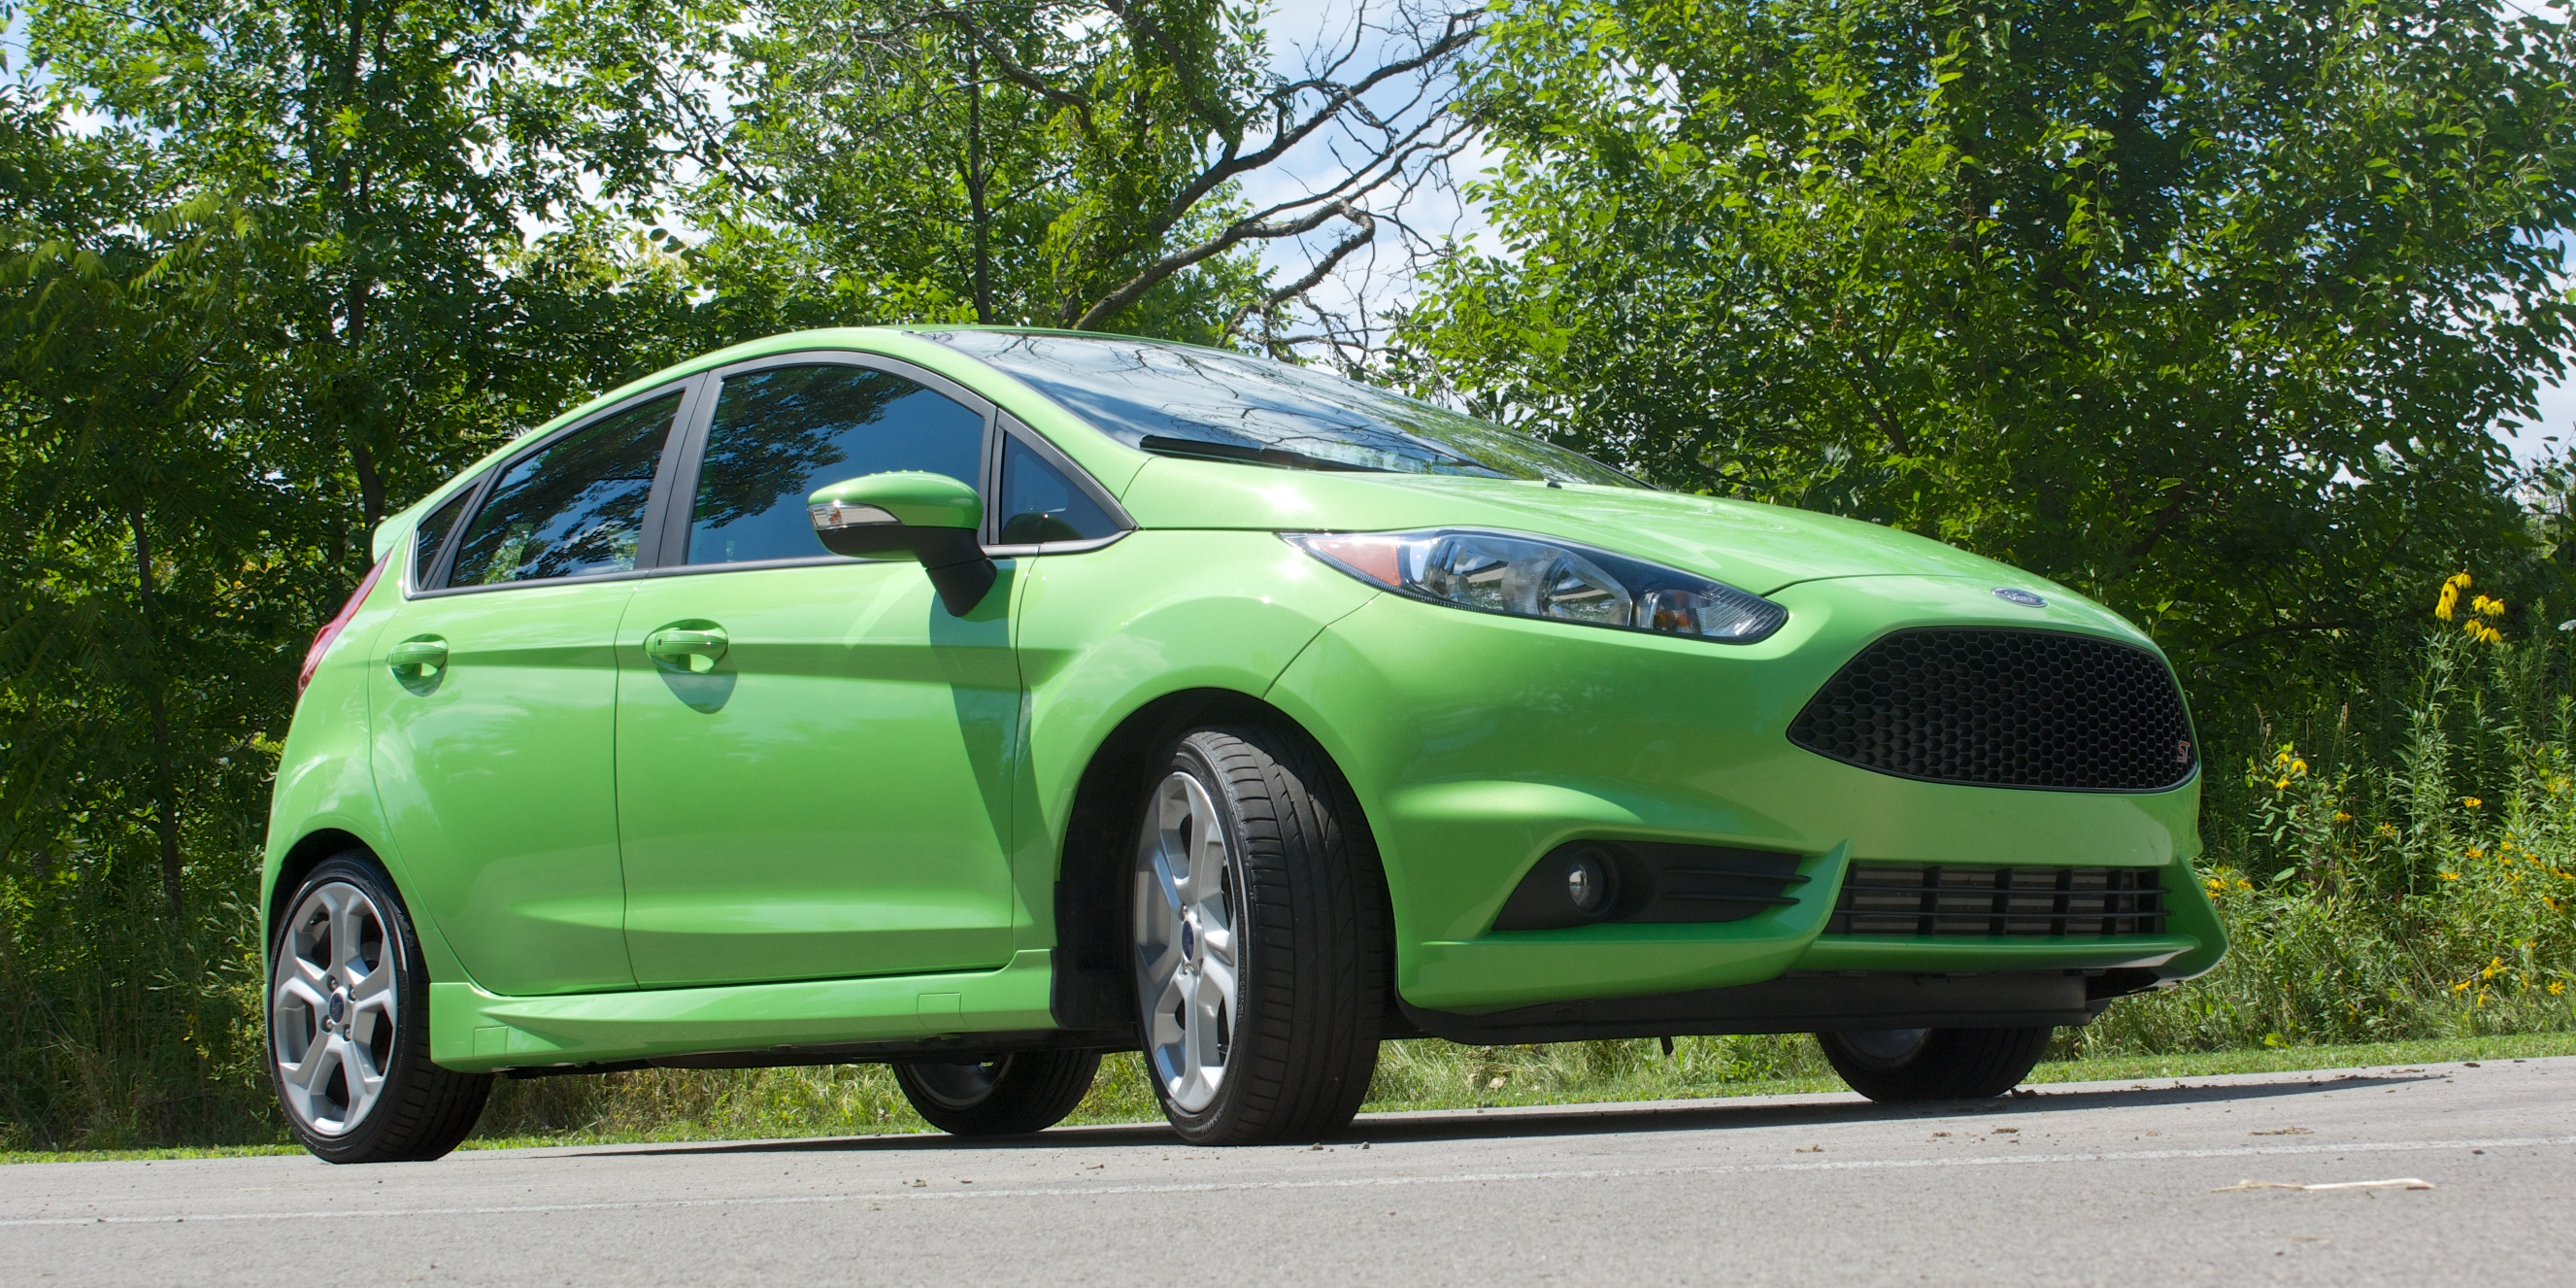 2014 ford fiesta st review motor review. Cars Review. Best American Auto & Cars Review